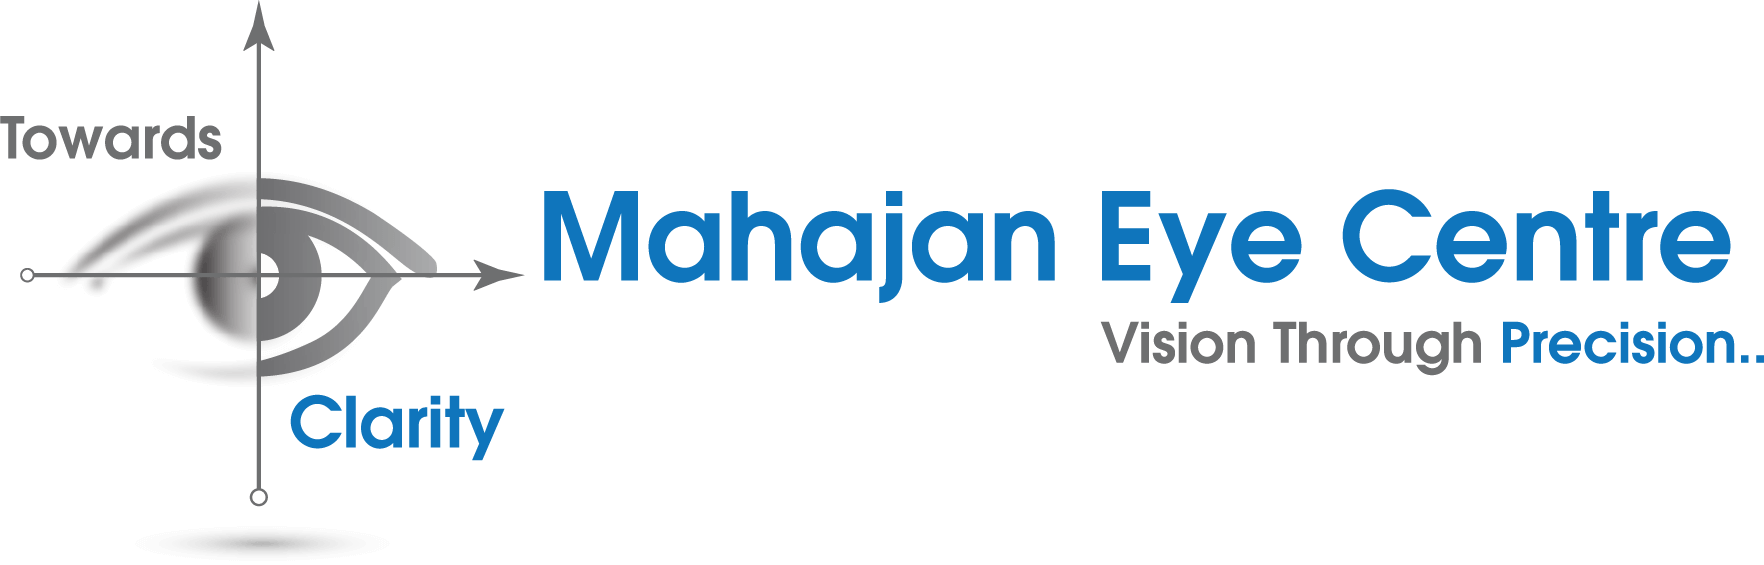 Mahajan Eye Centre